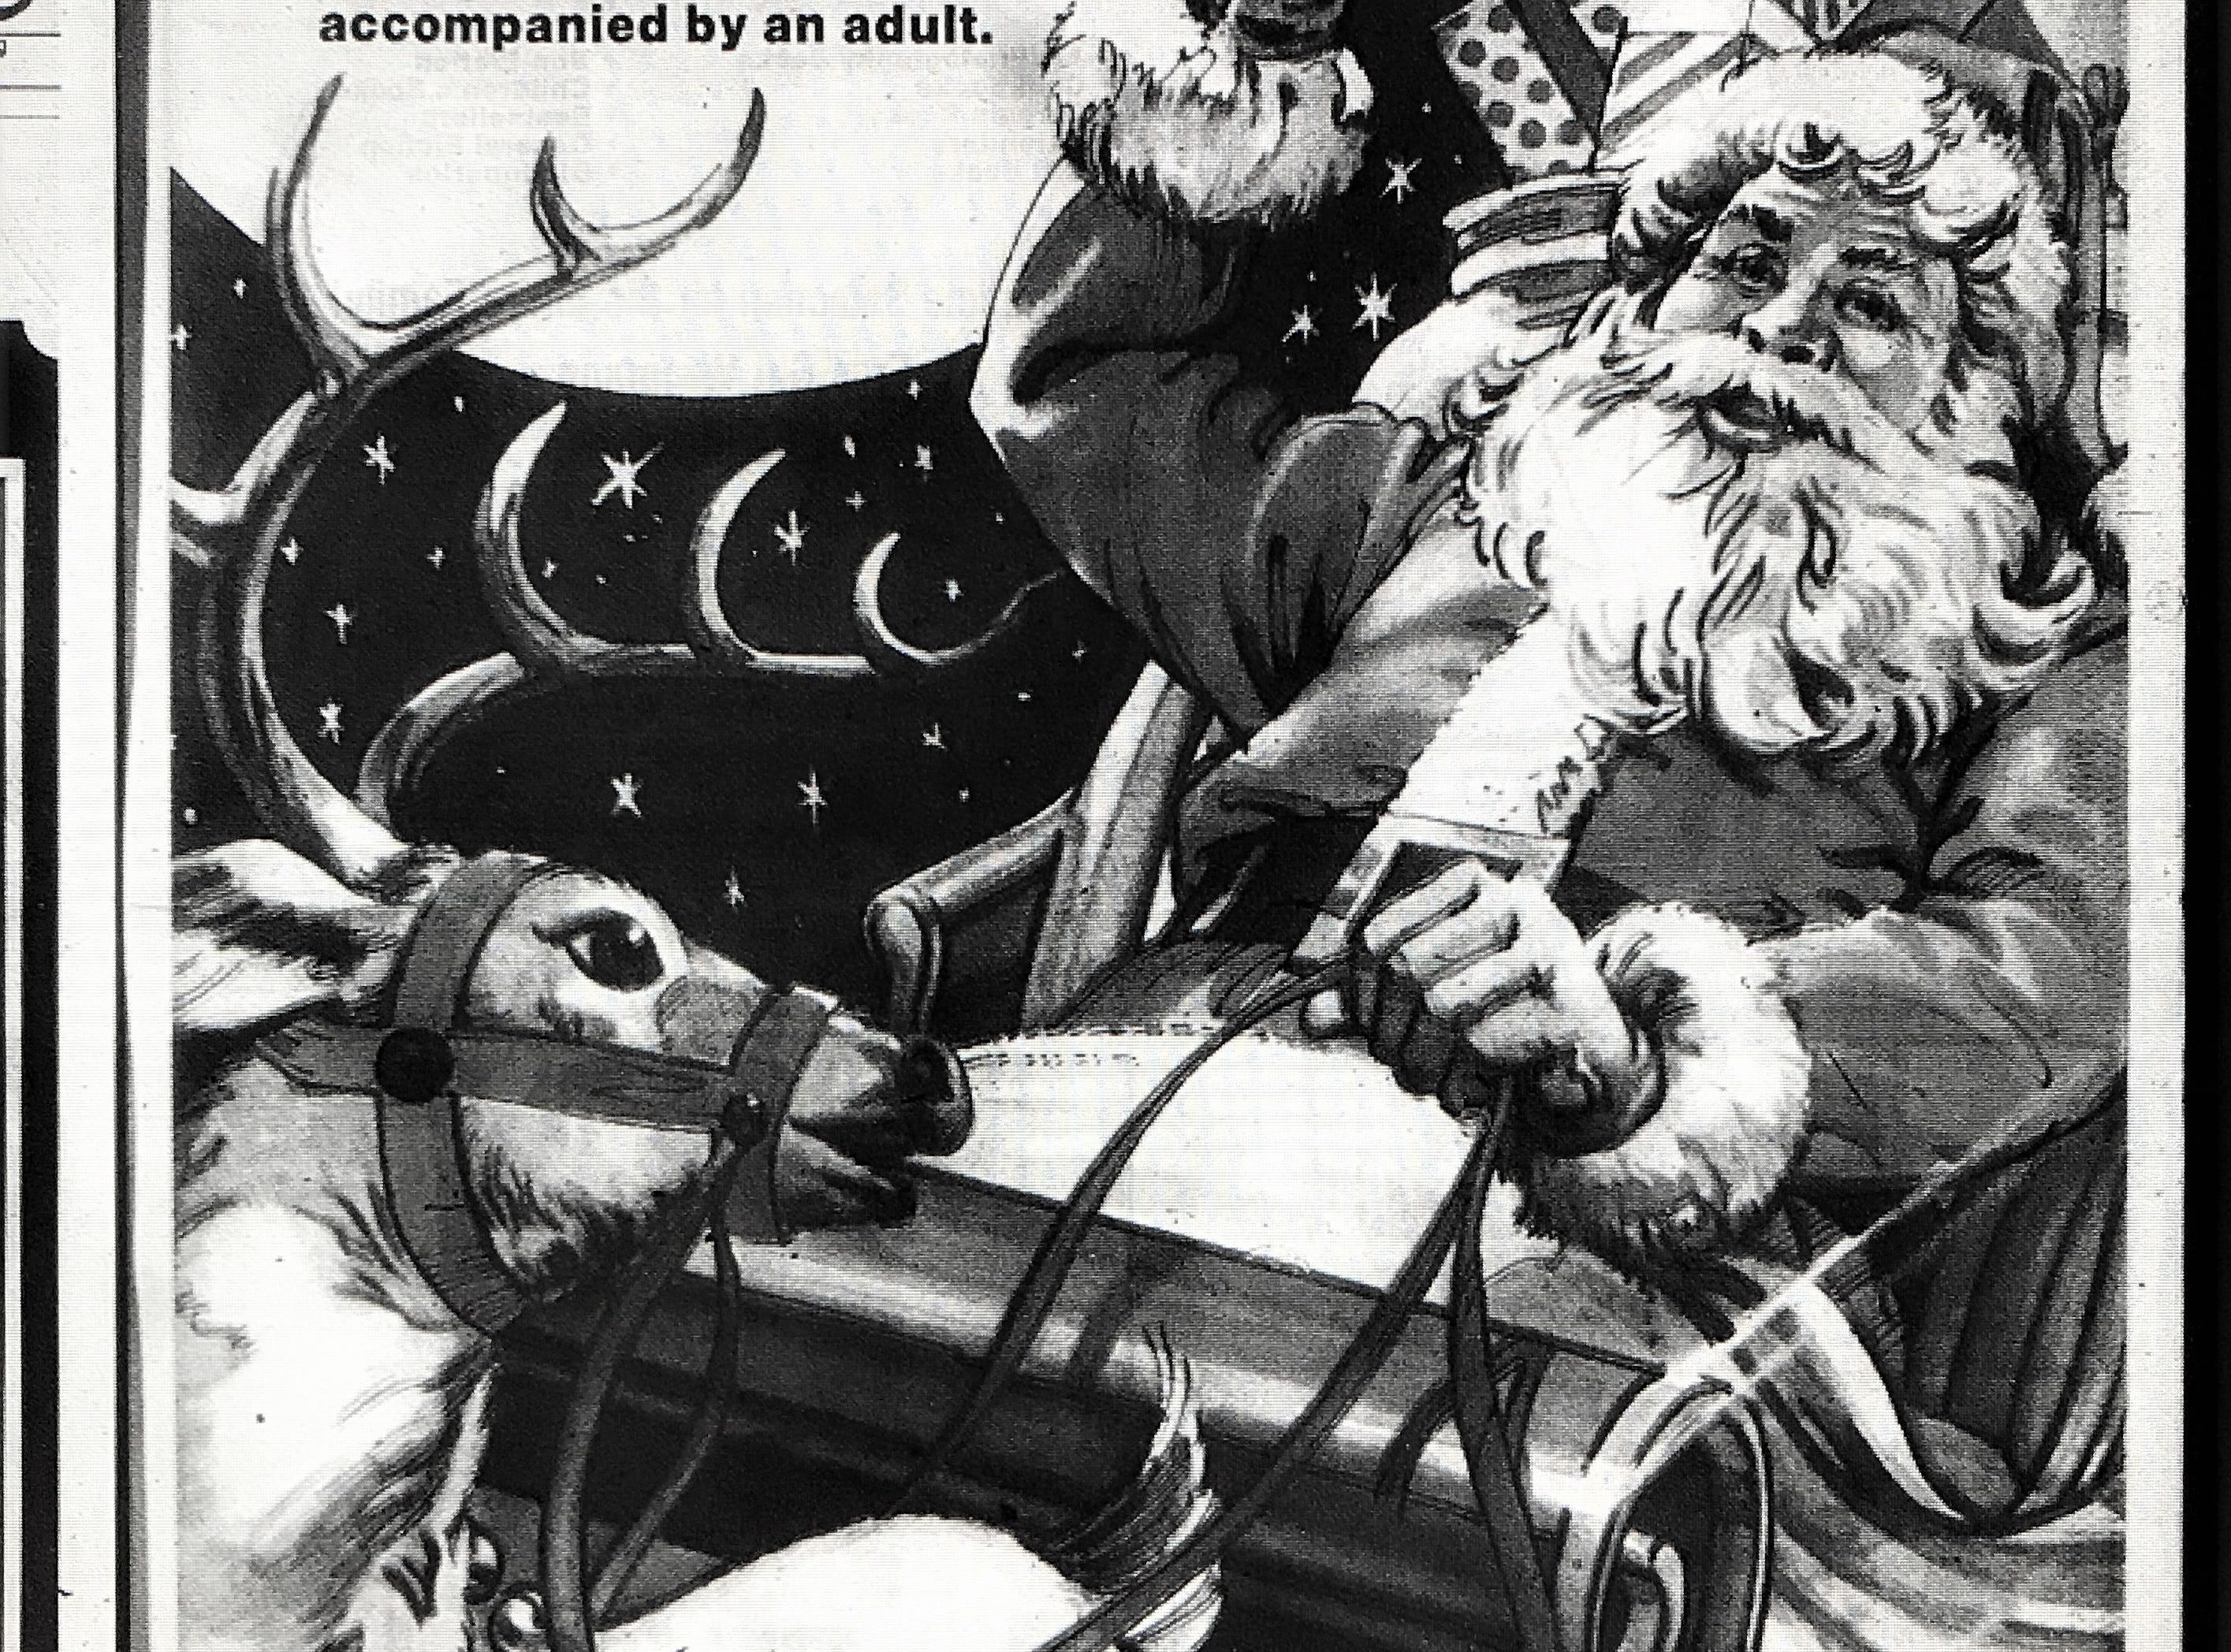 A 1988 Black Friday advertisement for the Queensgate Shopping Center in York. According to the ad, the first 500 children accompanied by an adult were awarded a 15'' toy-filled stocking.